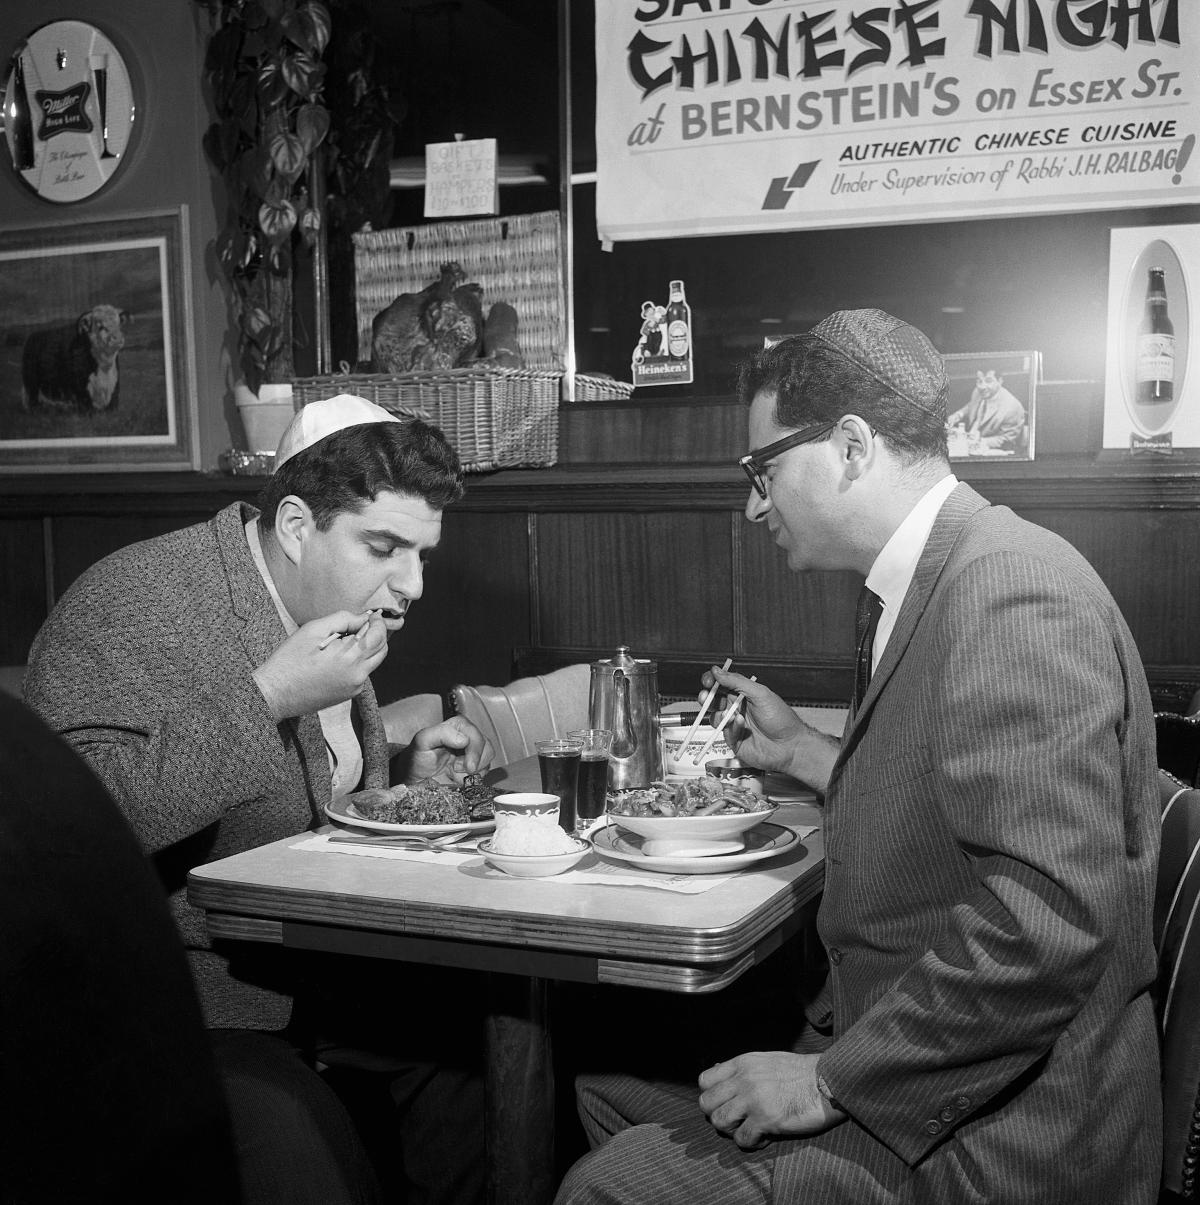 Two men wearing yarmulkes sit at a diner table, eating chinese food with chopsticks